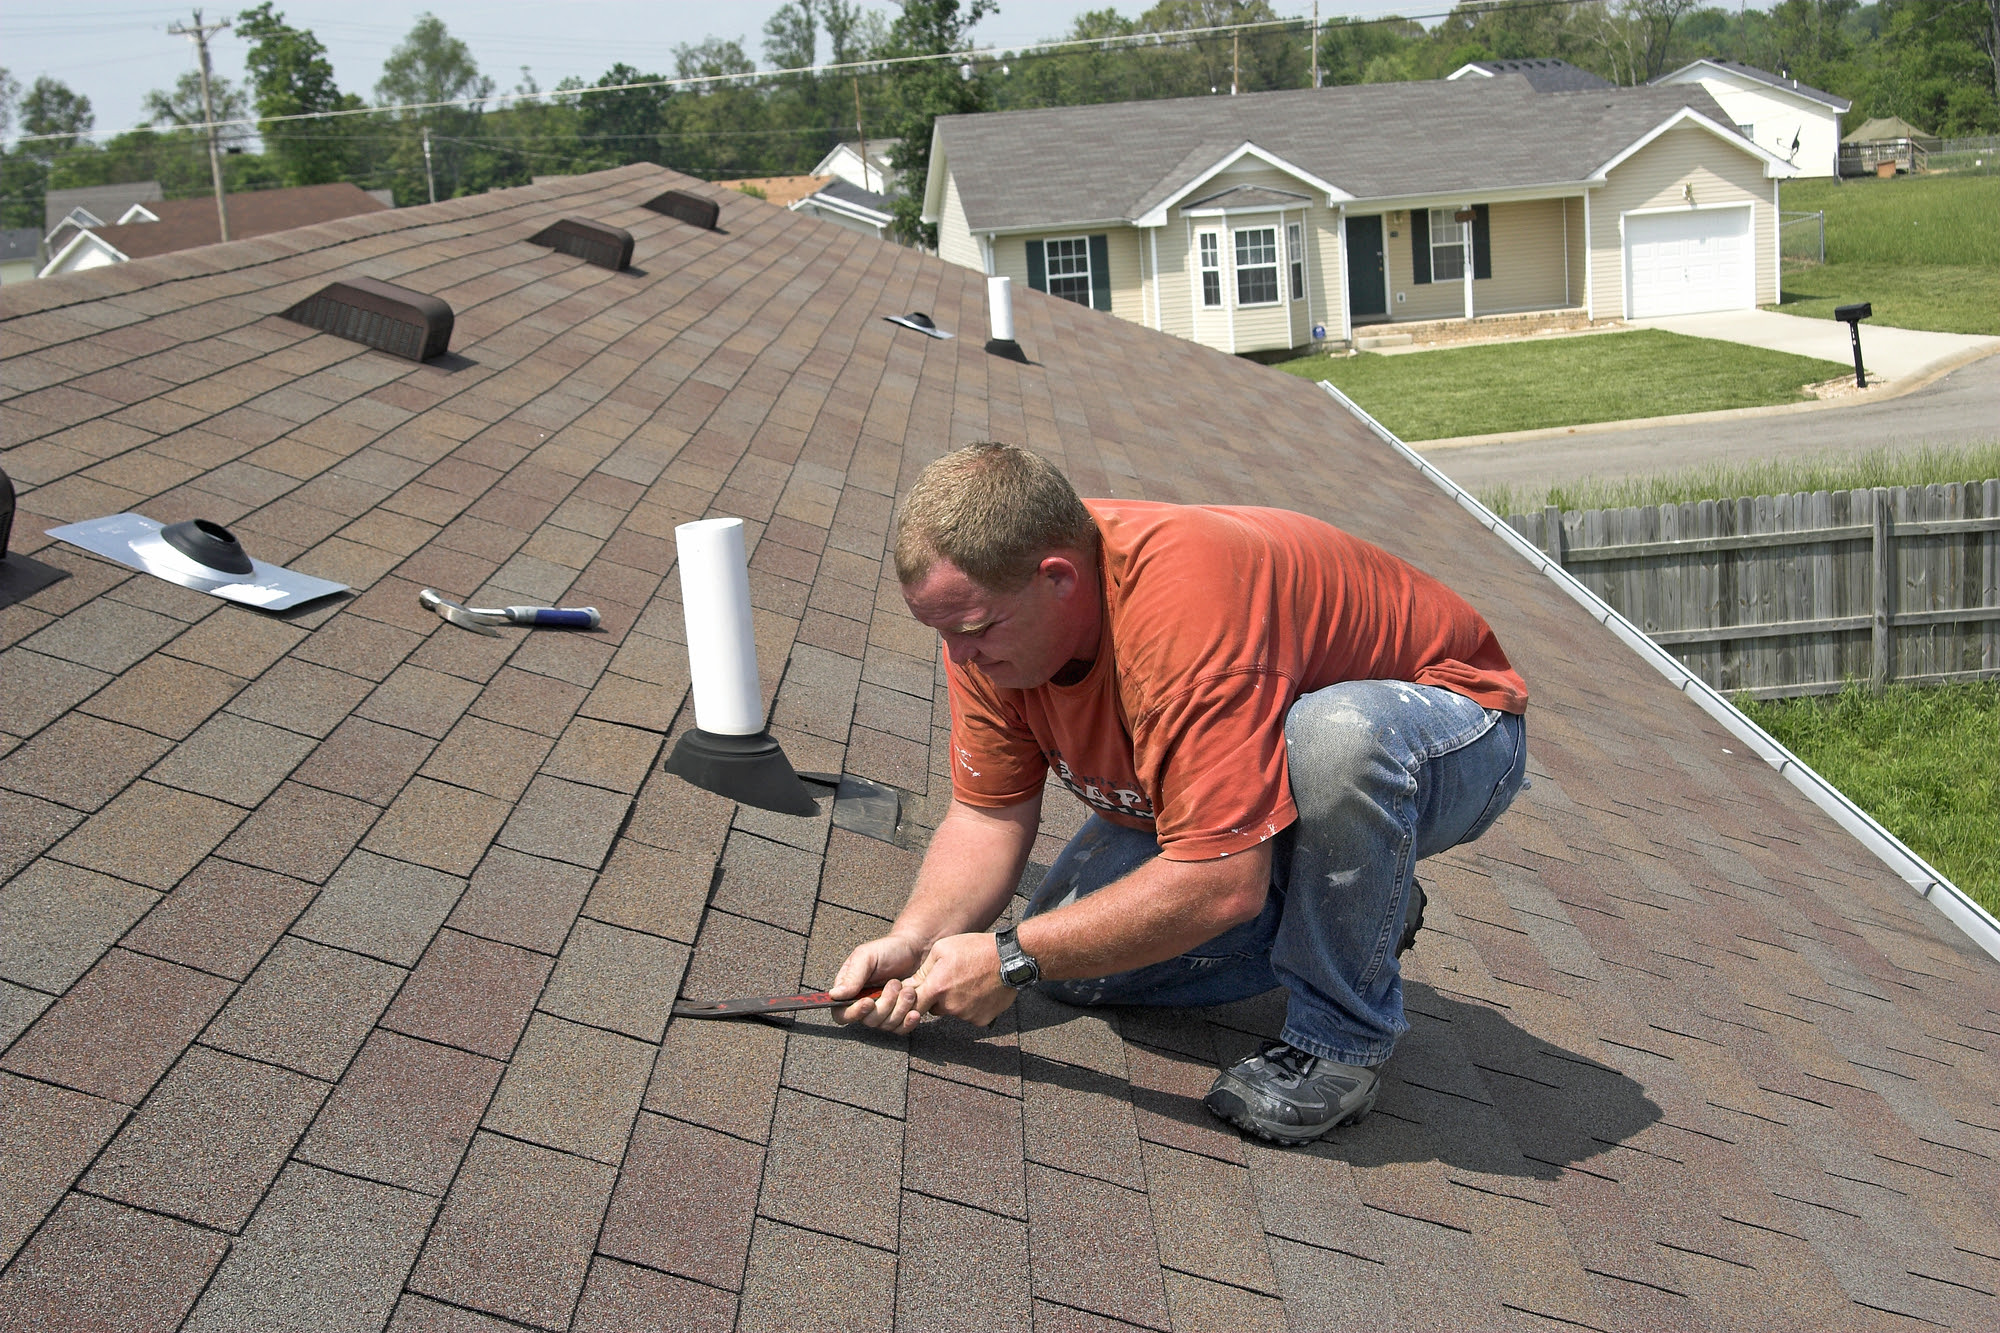 Finding Good Roof Leak Repair Chicago Contractors